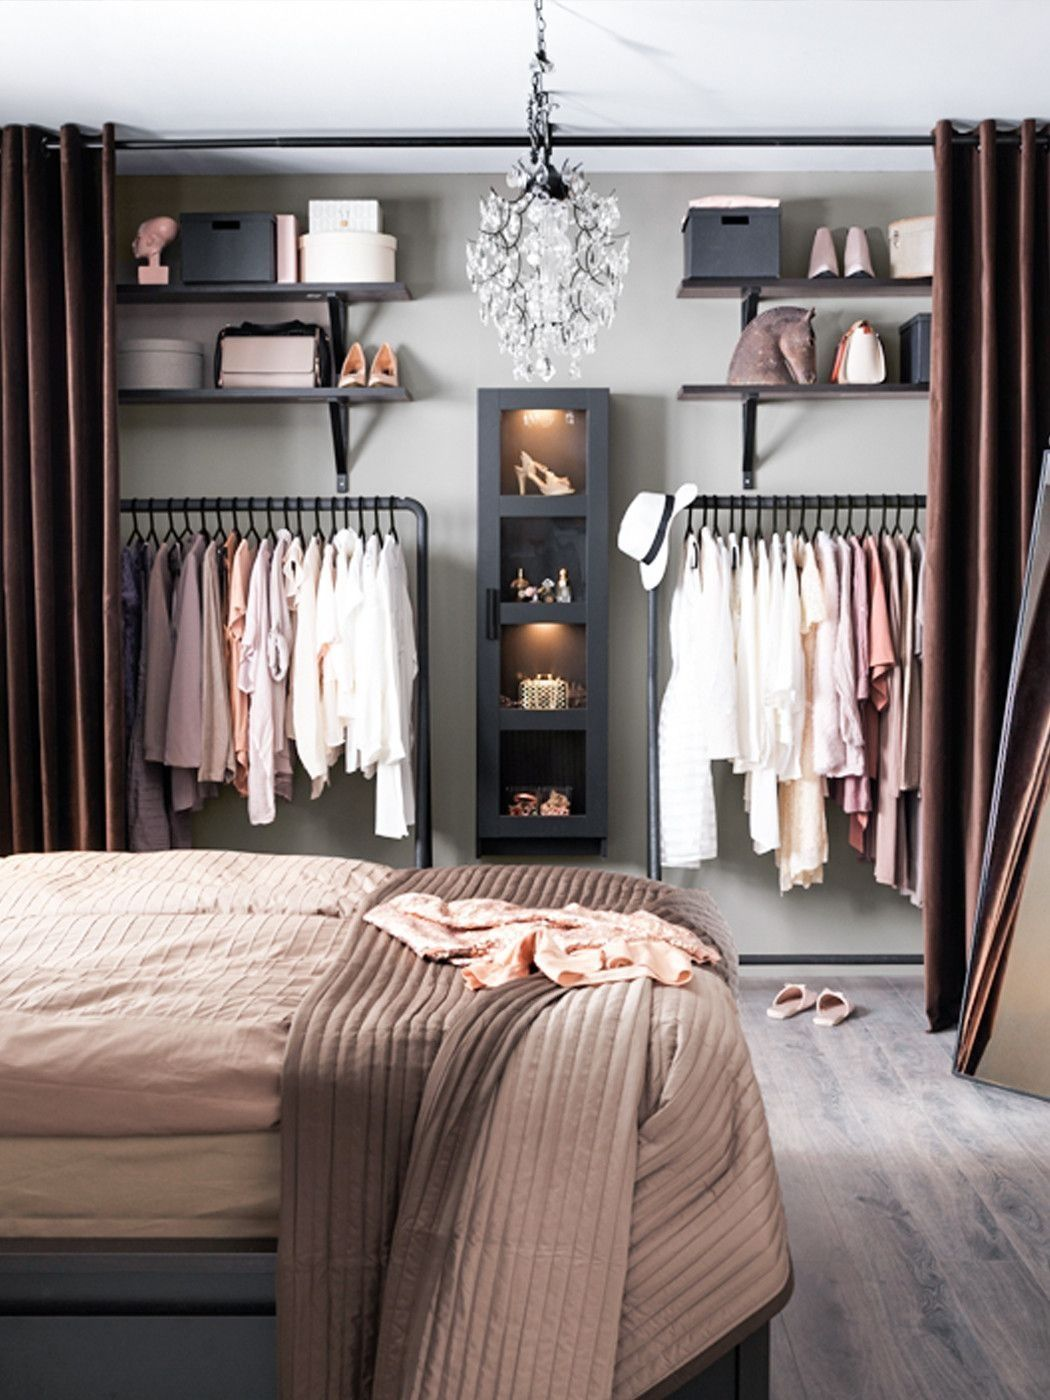 Organize Your Closet With The KonMari Method | Schlafzimmer ...